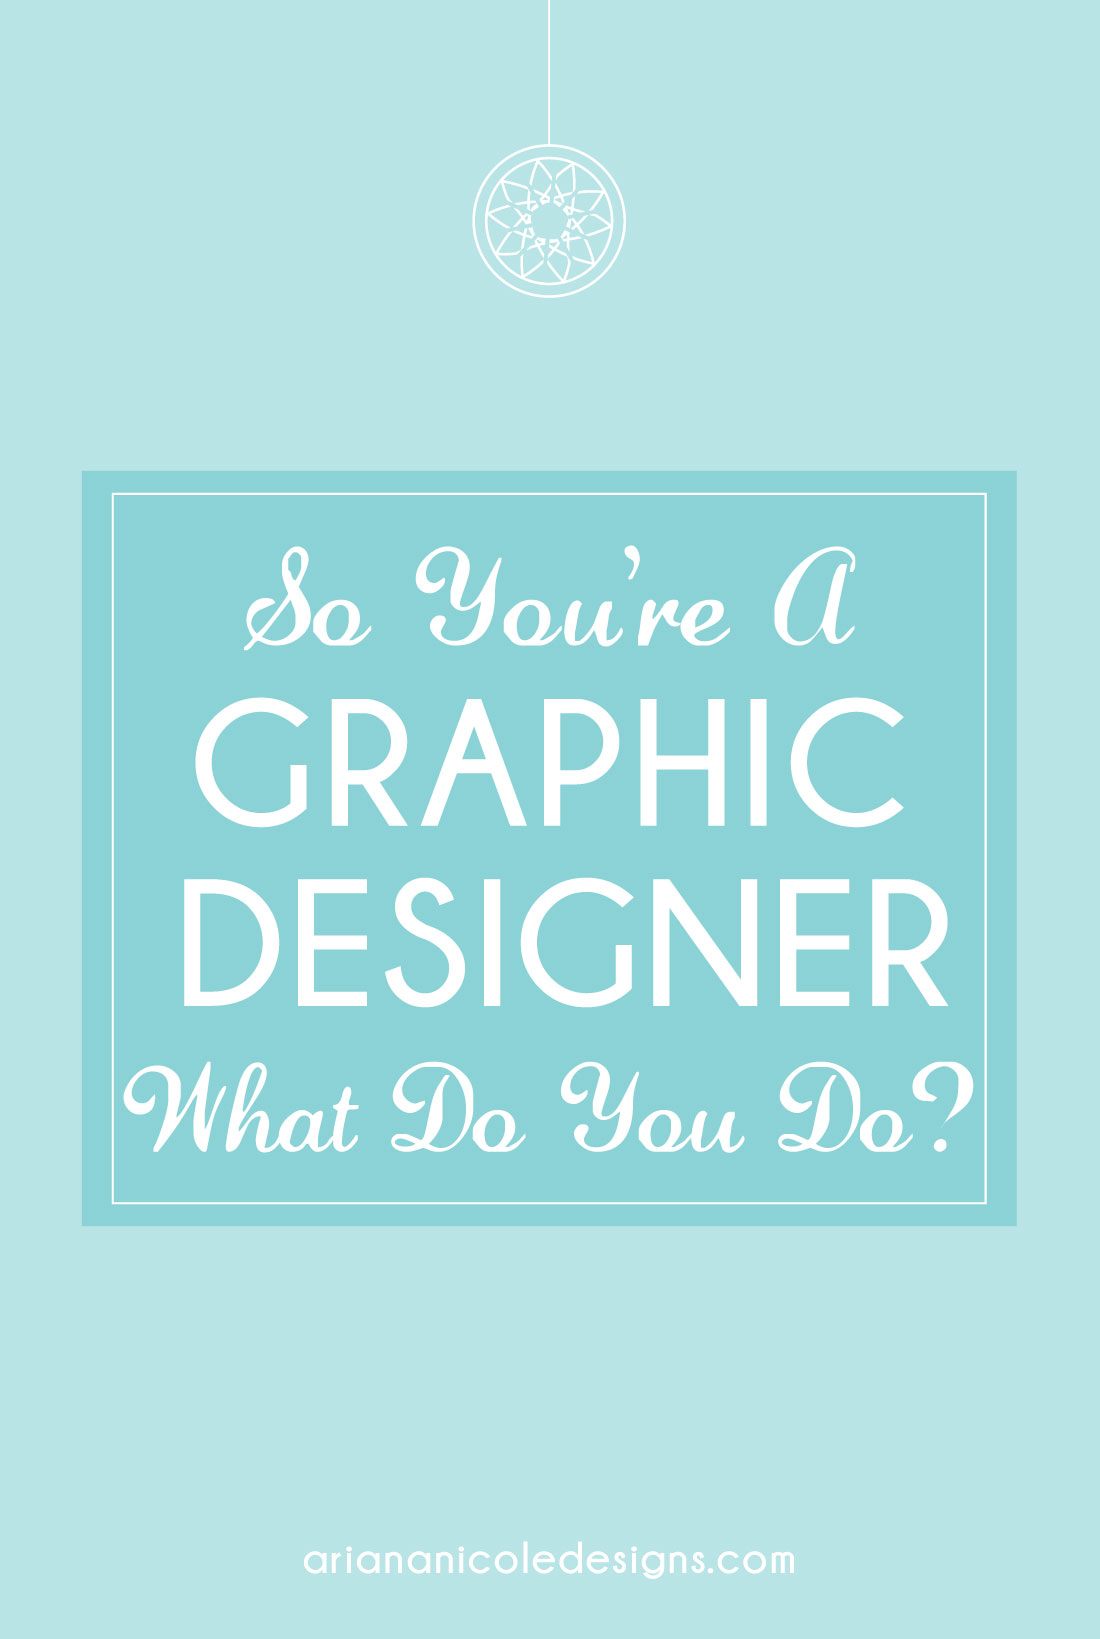 So_Youre_A_Graphic_Designer_What_Do_You_Do-1100